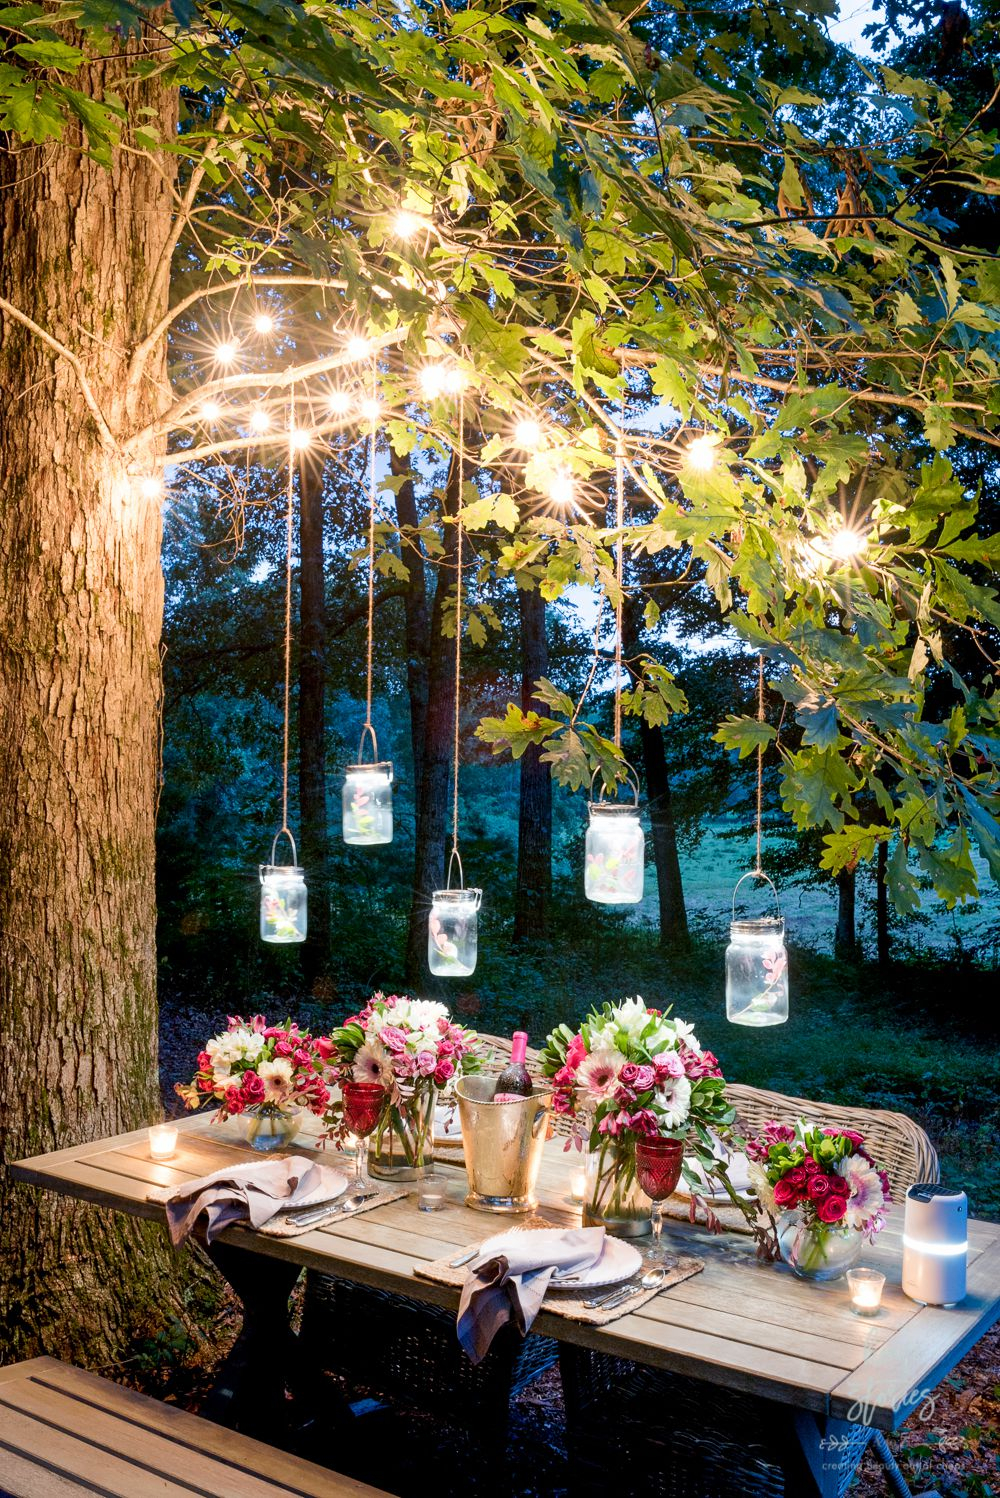 25 Backyard Lighting Ideas How To Hang Outdoor String Lights with regard to Backyard String Light Ideas